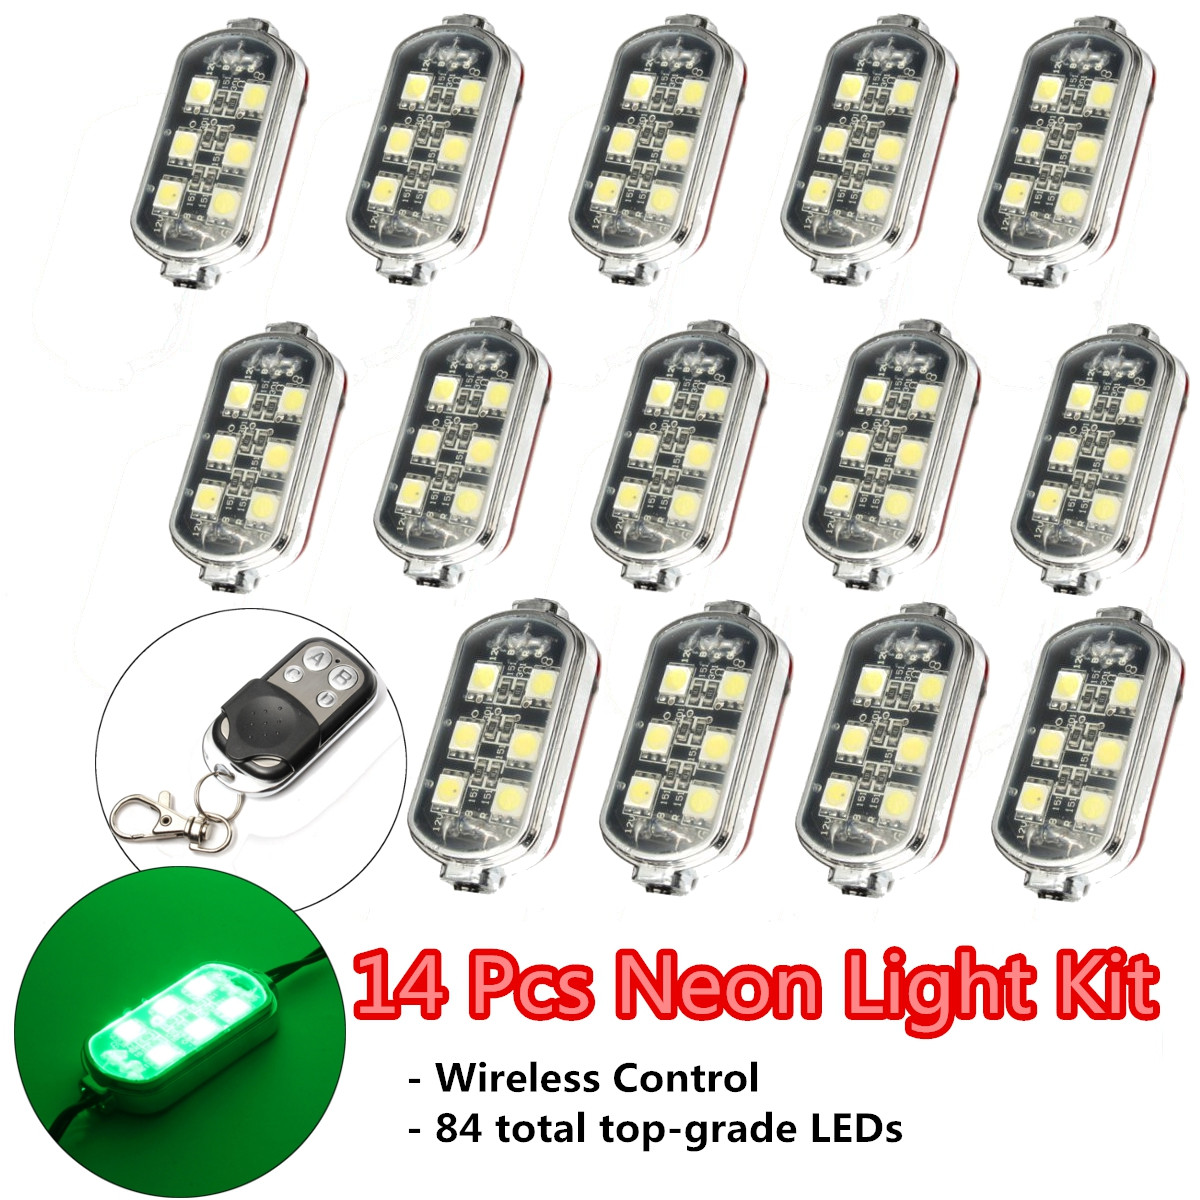 14 Pcs Wireless Control Remote 84LED Neon Accent Lights Green Motorcycle Bike